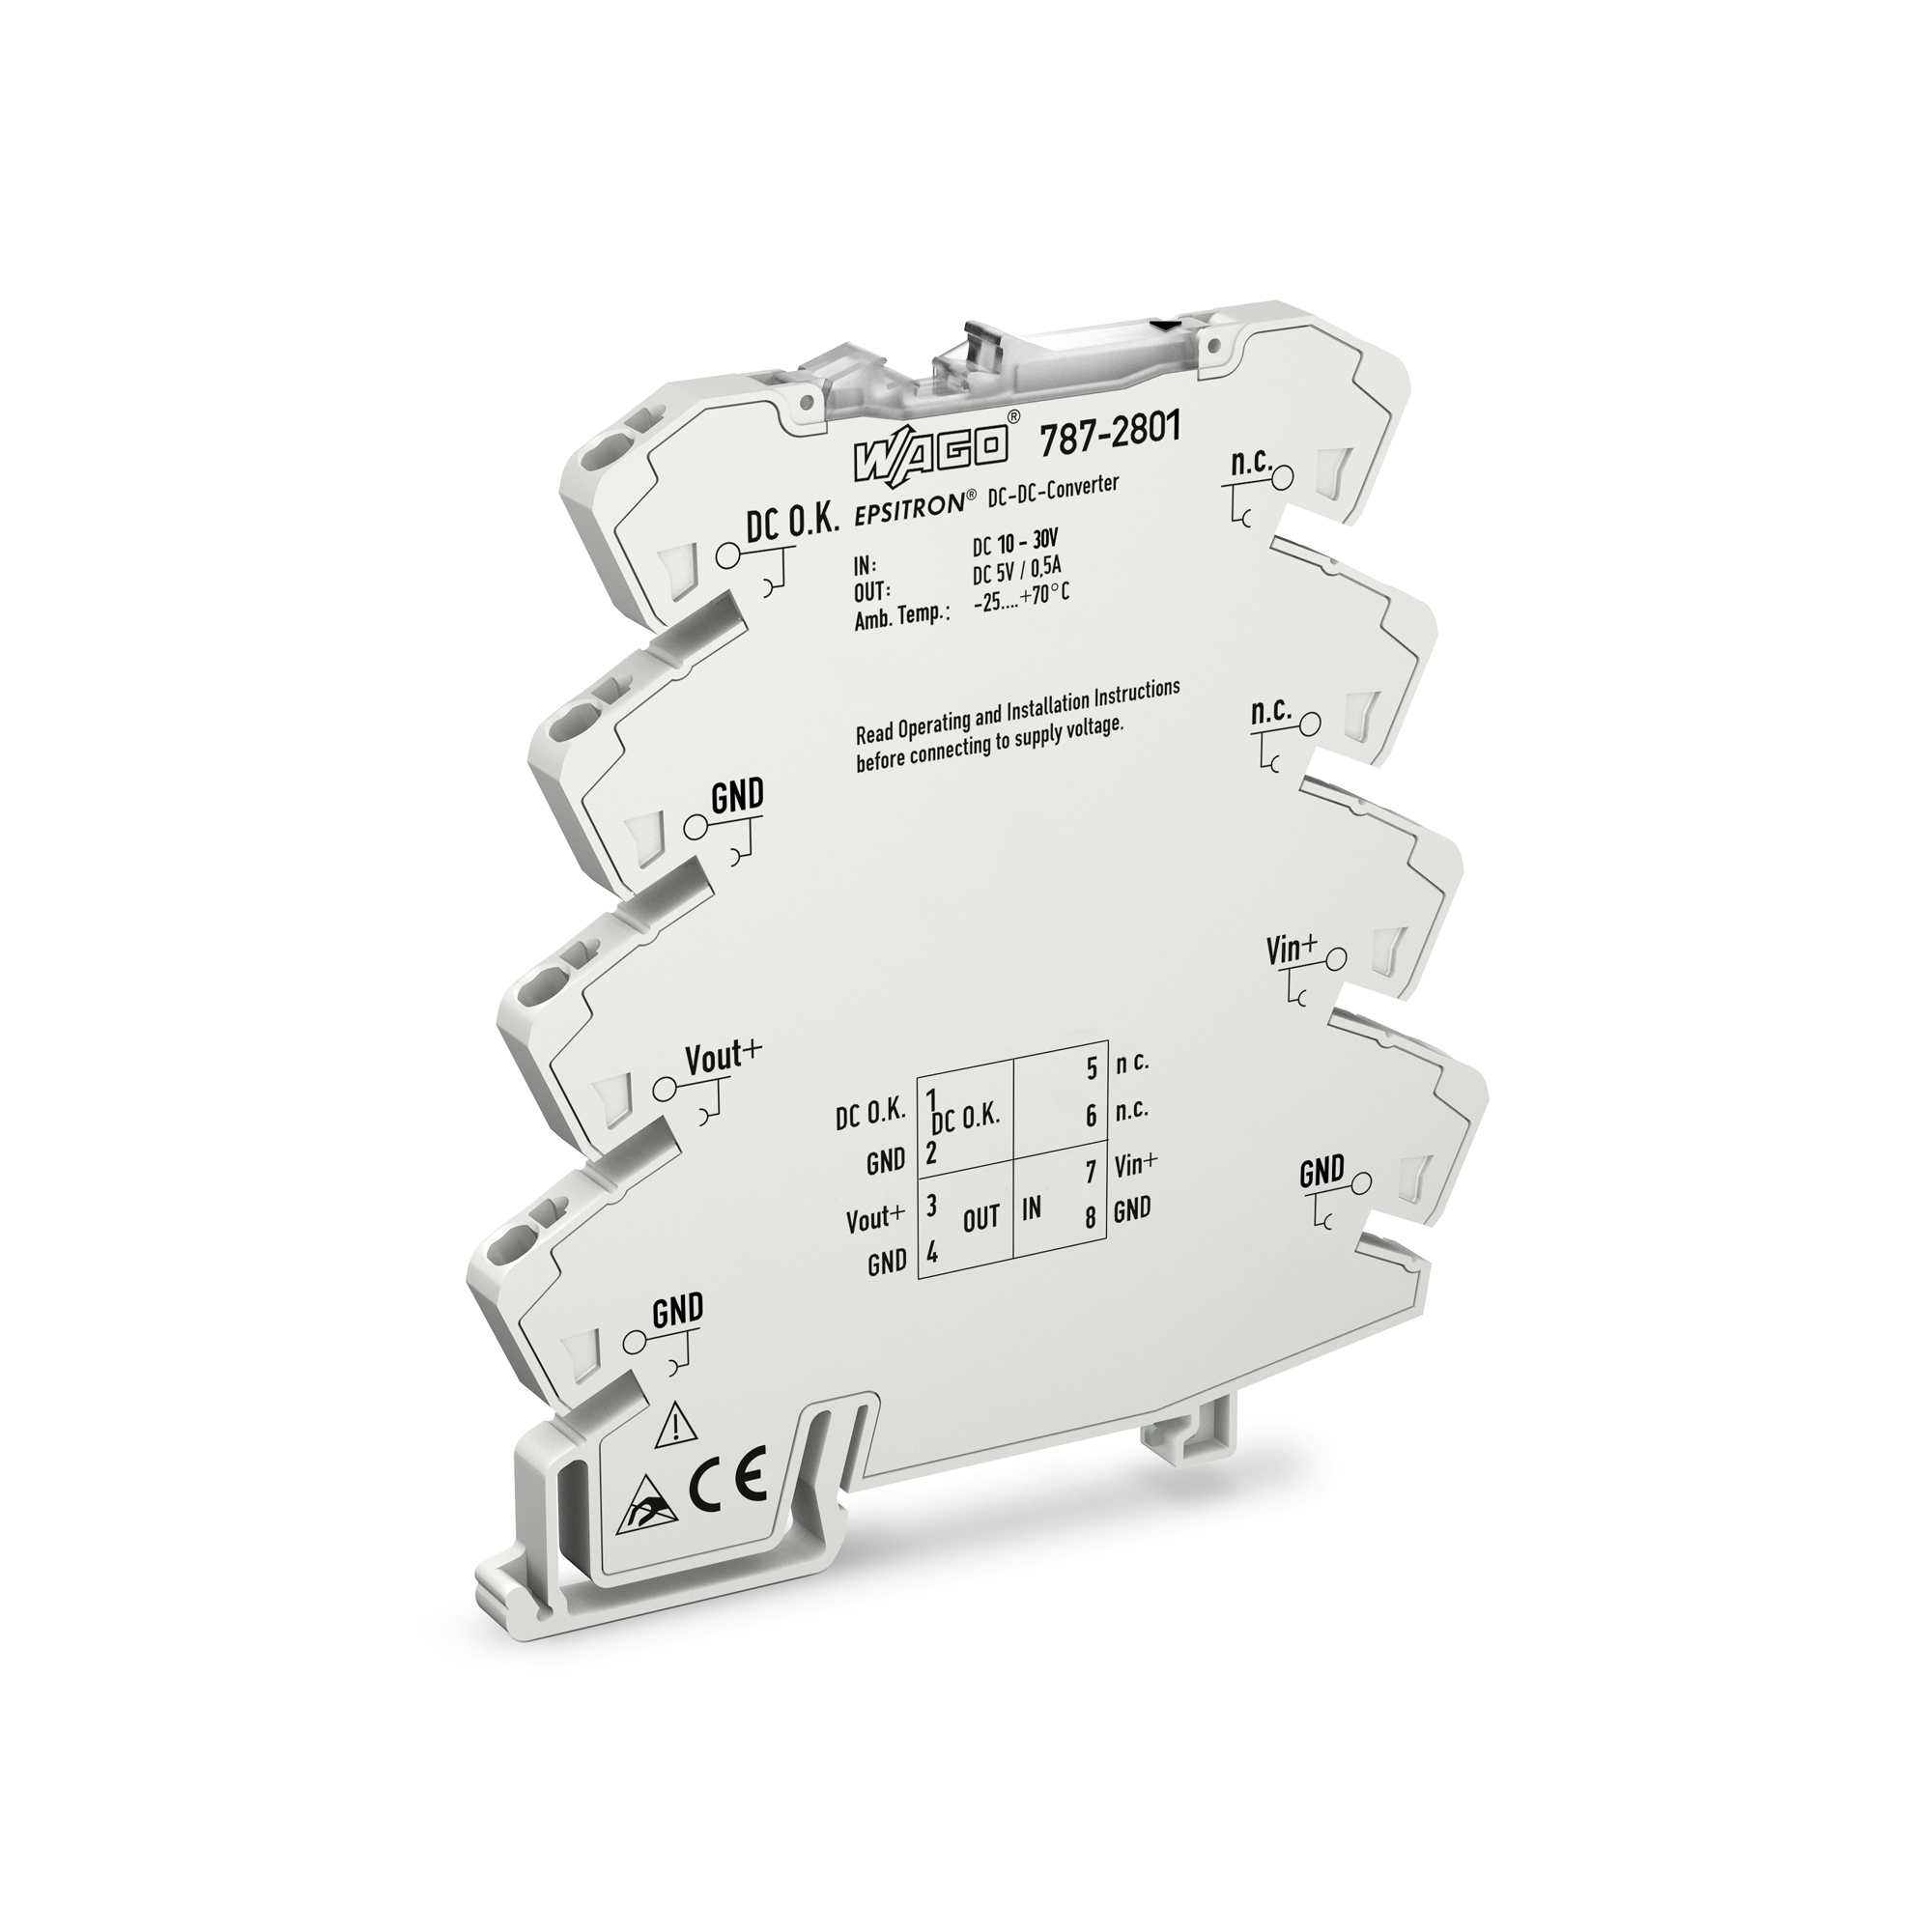 Wago Power Supplies For All Industrial Applications Uninterrupted Supply Ups Circuit Electronic Projects Epsitron Dc Converters